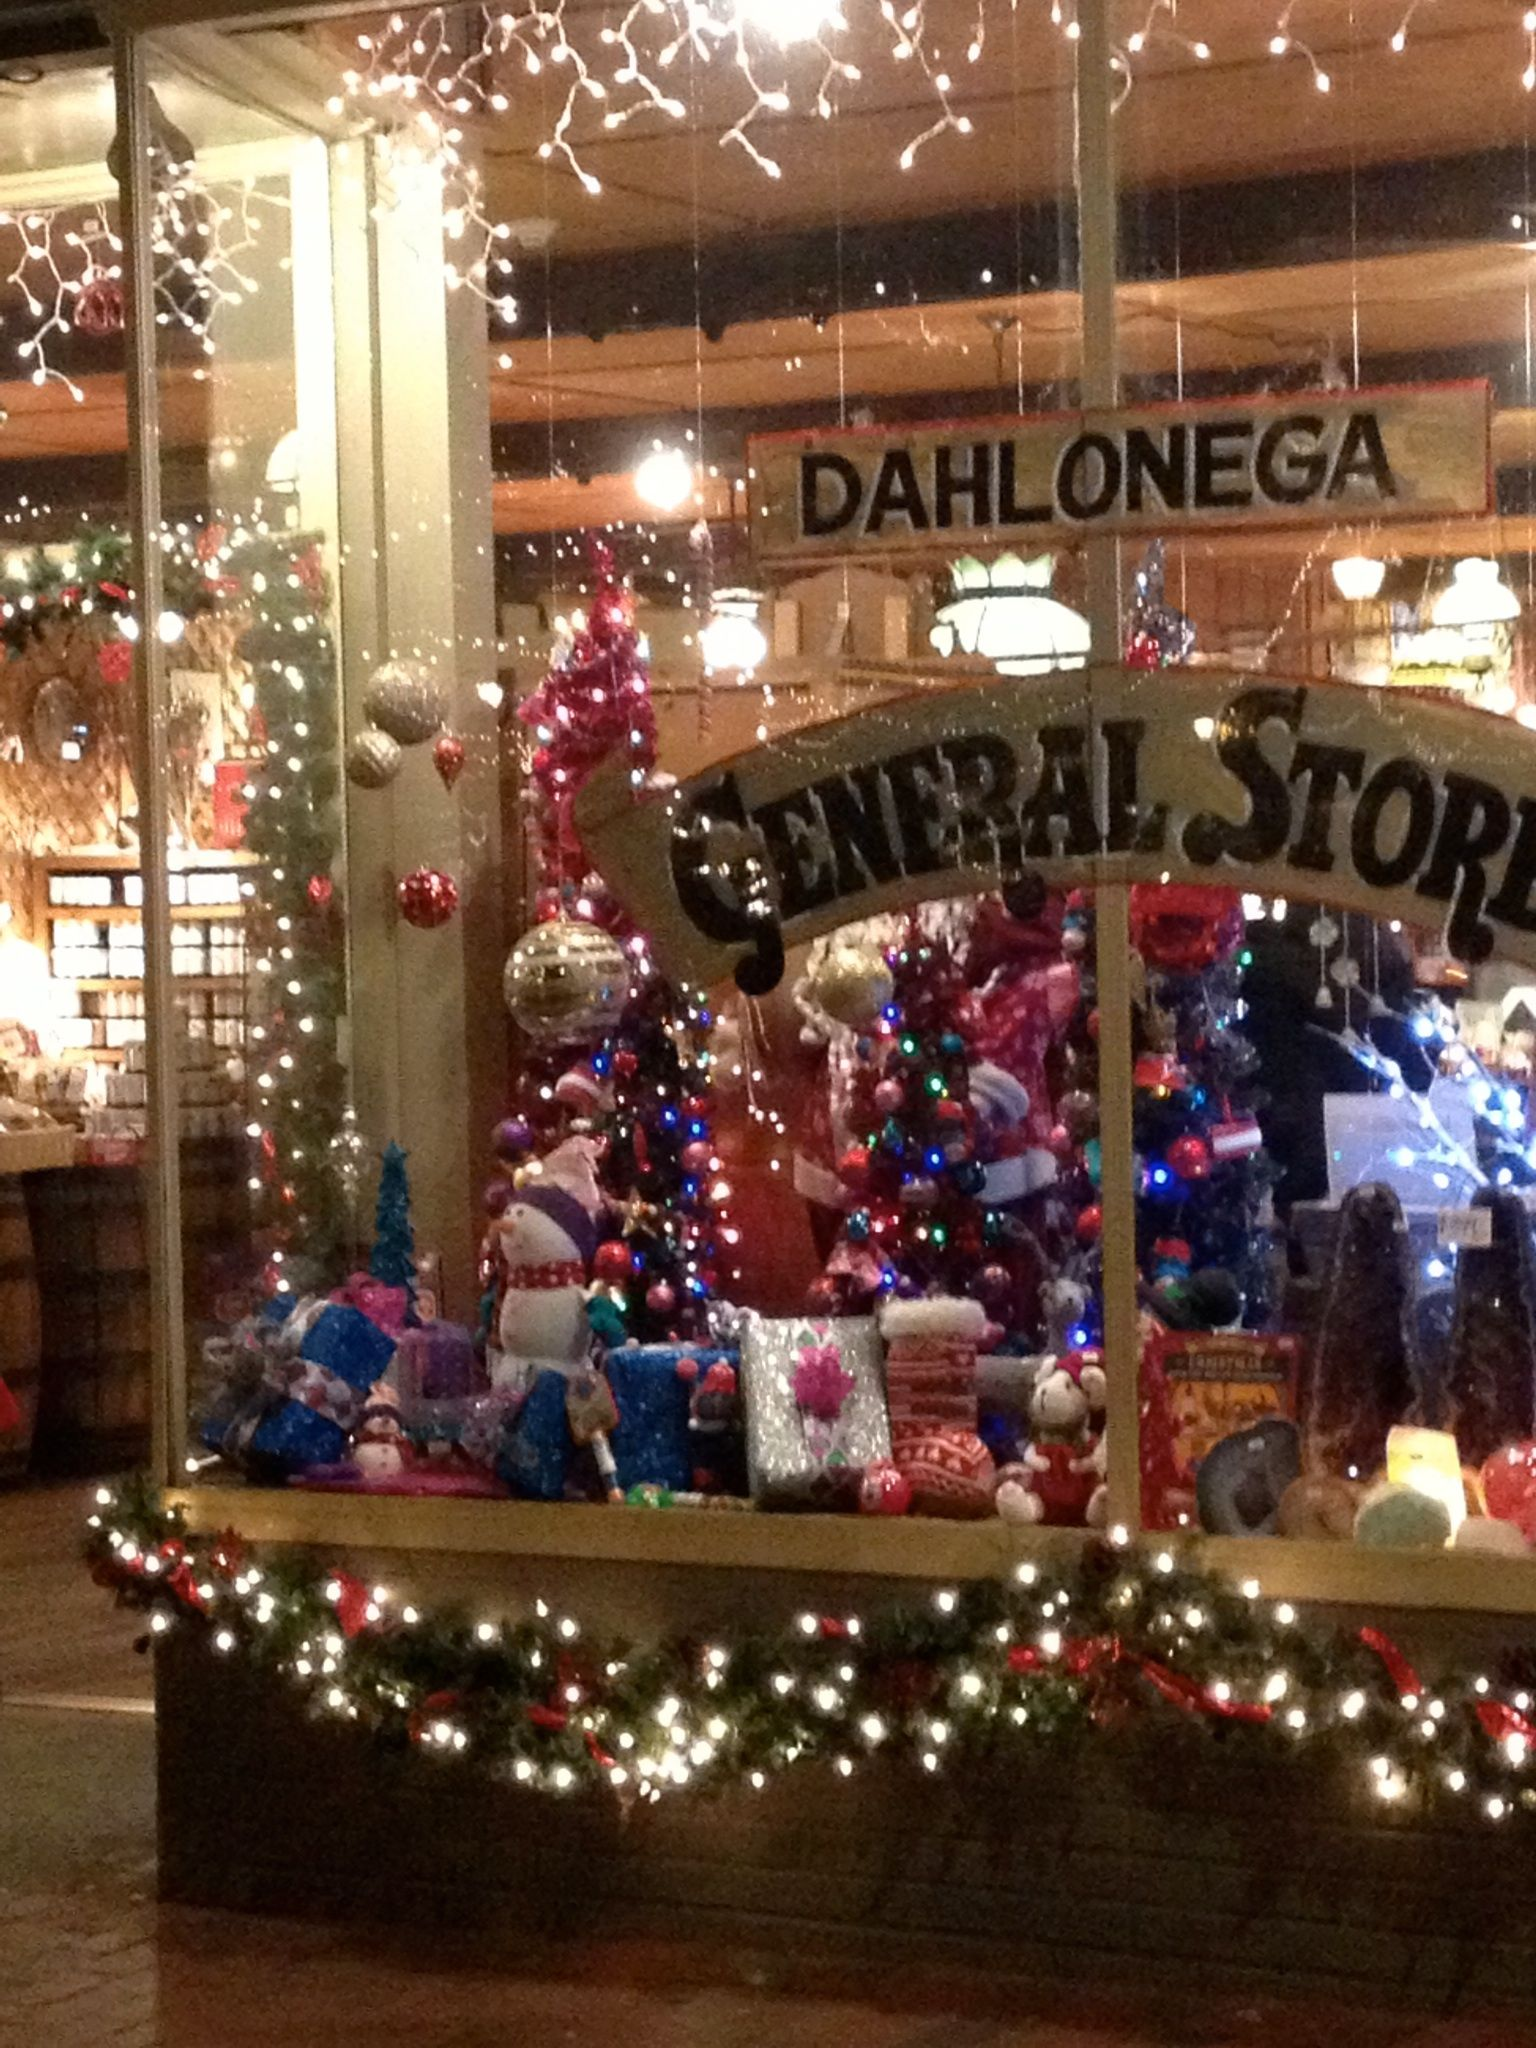 Christmas Town In Georgia Dahlonega.General Store Has Some Interesting Items And A Player Piano